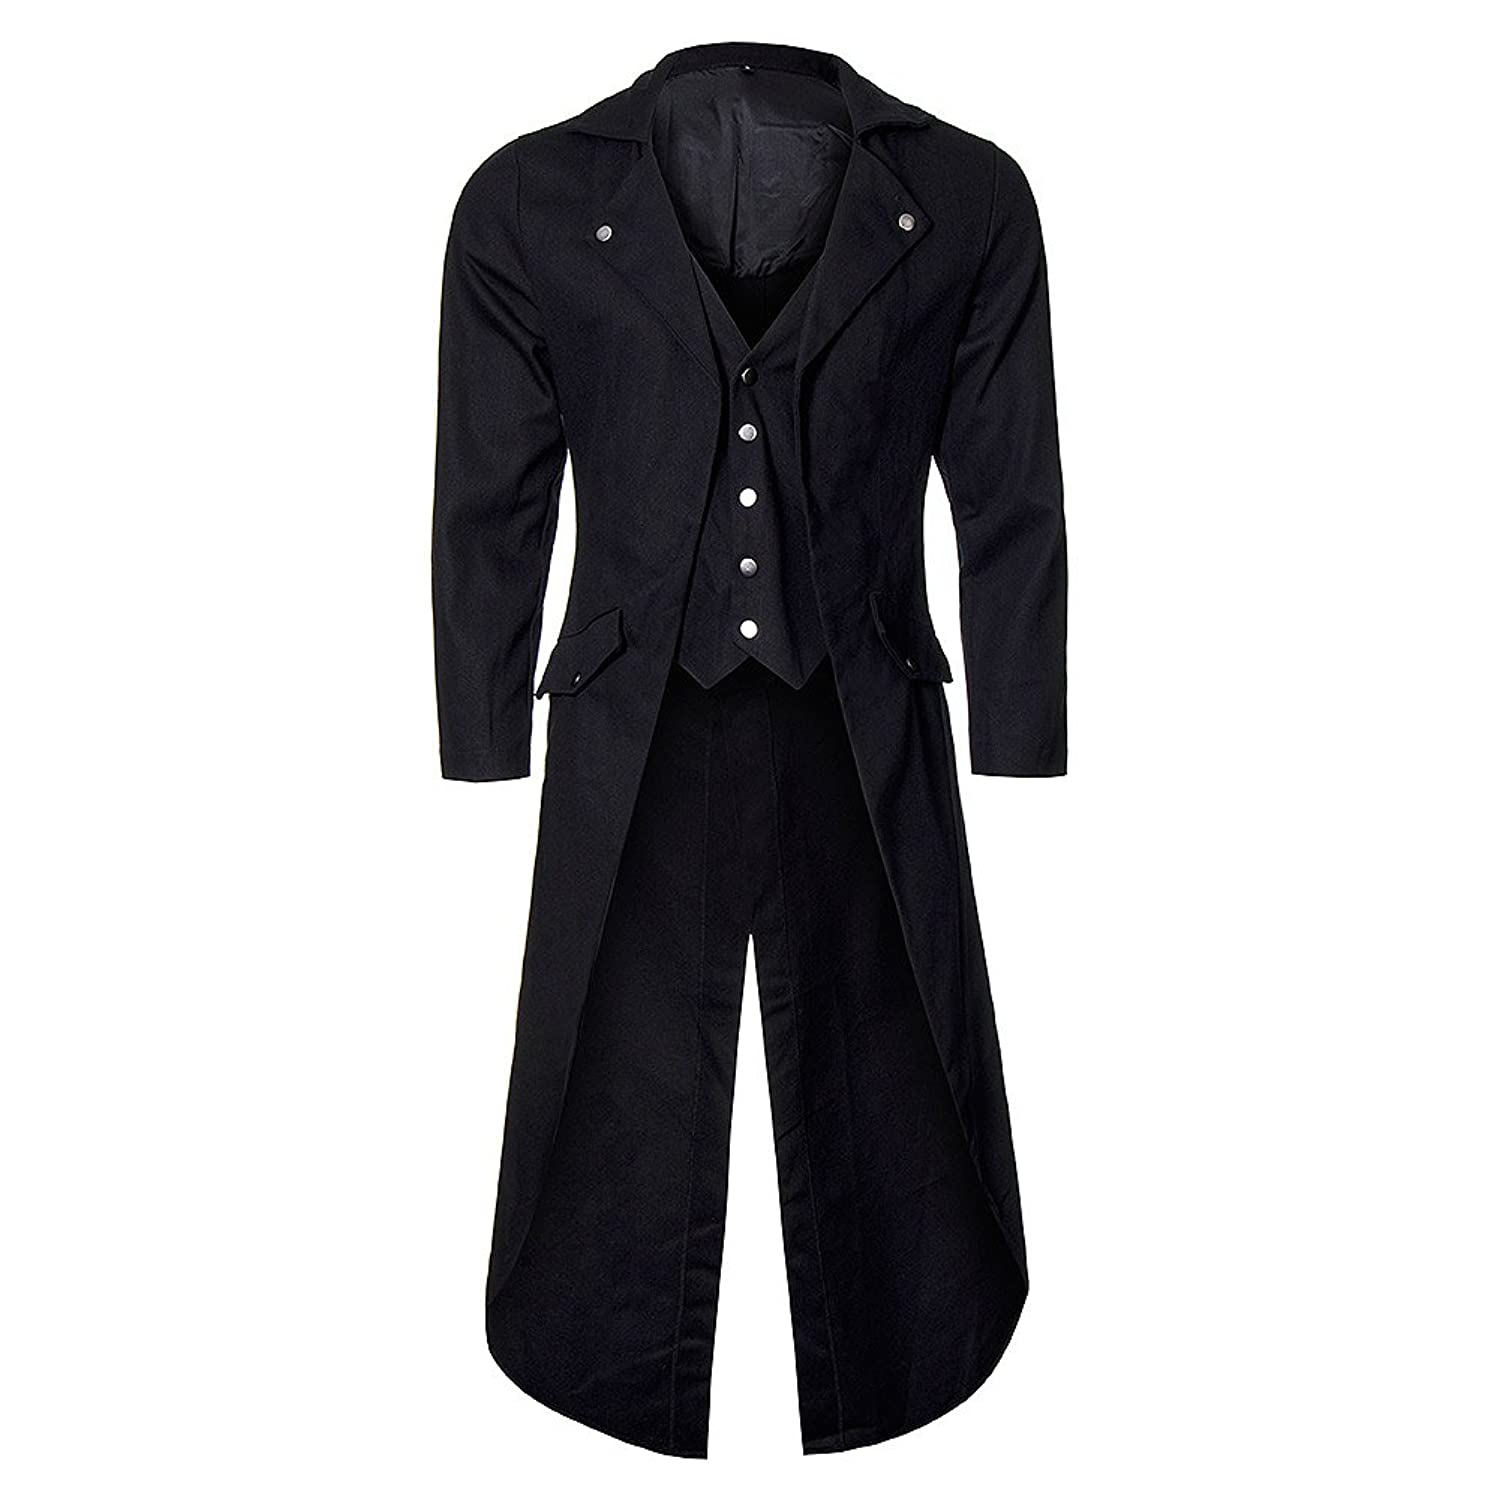 Men's Steampunk Jackets, Coats & Suits Banned Unisex-adults Frock Tail Coat $99.16 AT vintagedancer.com